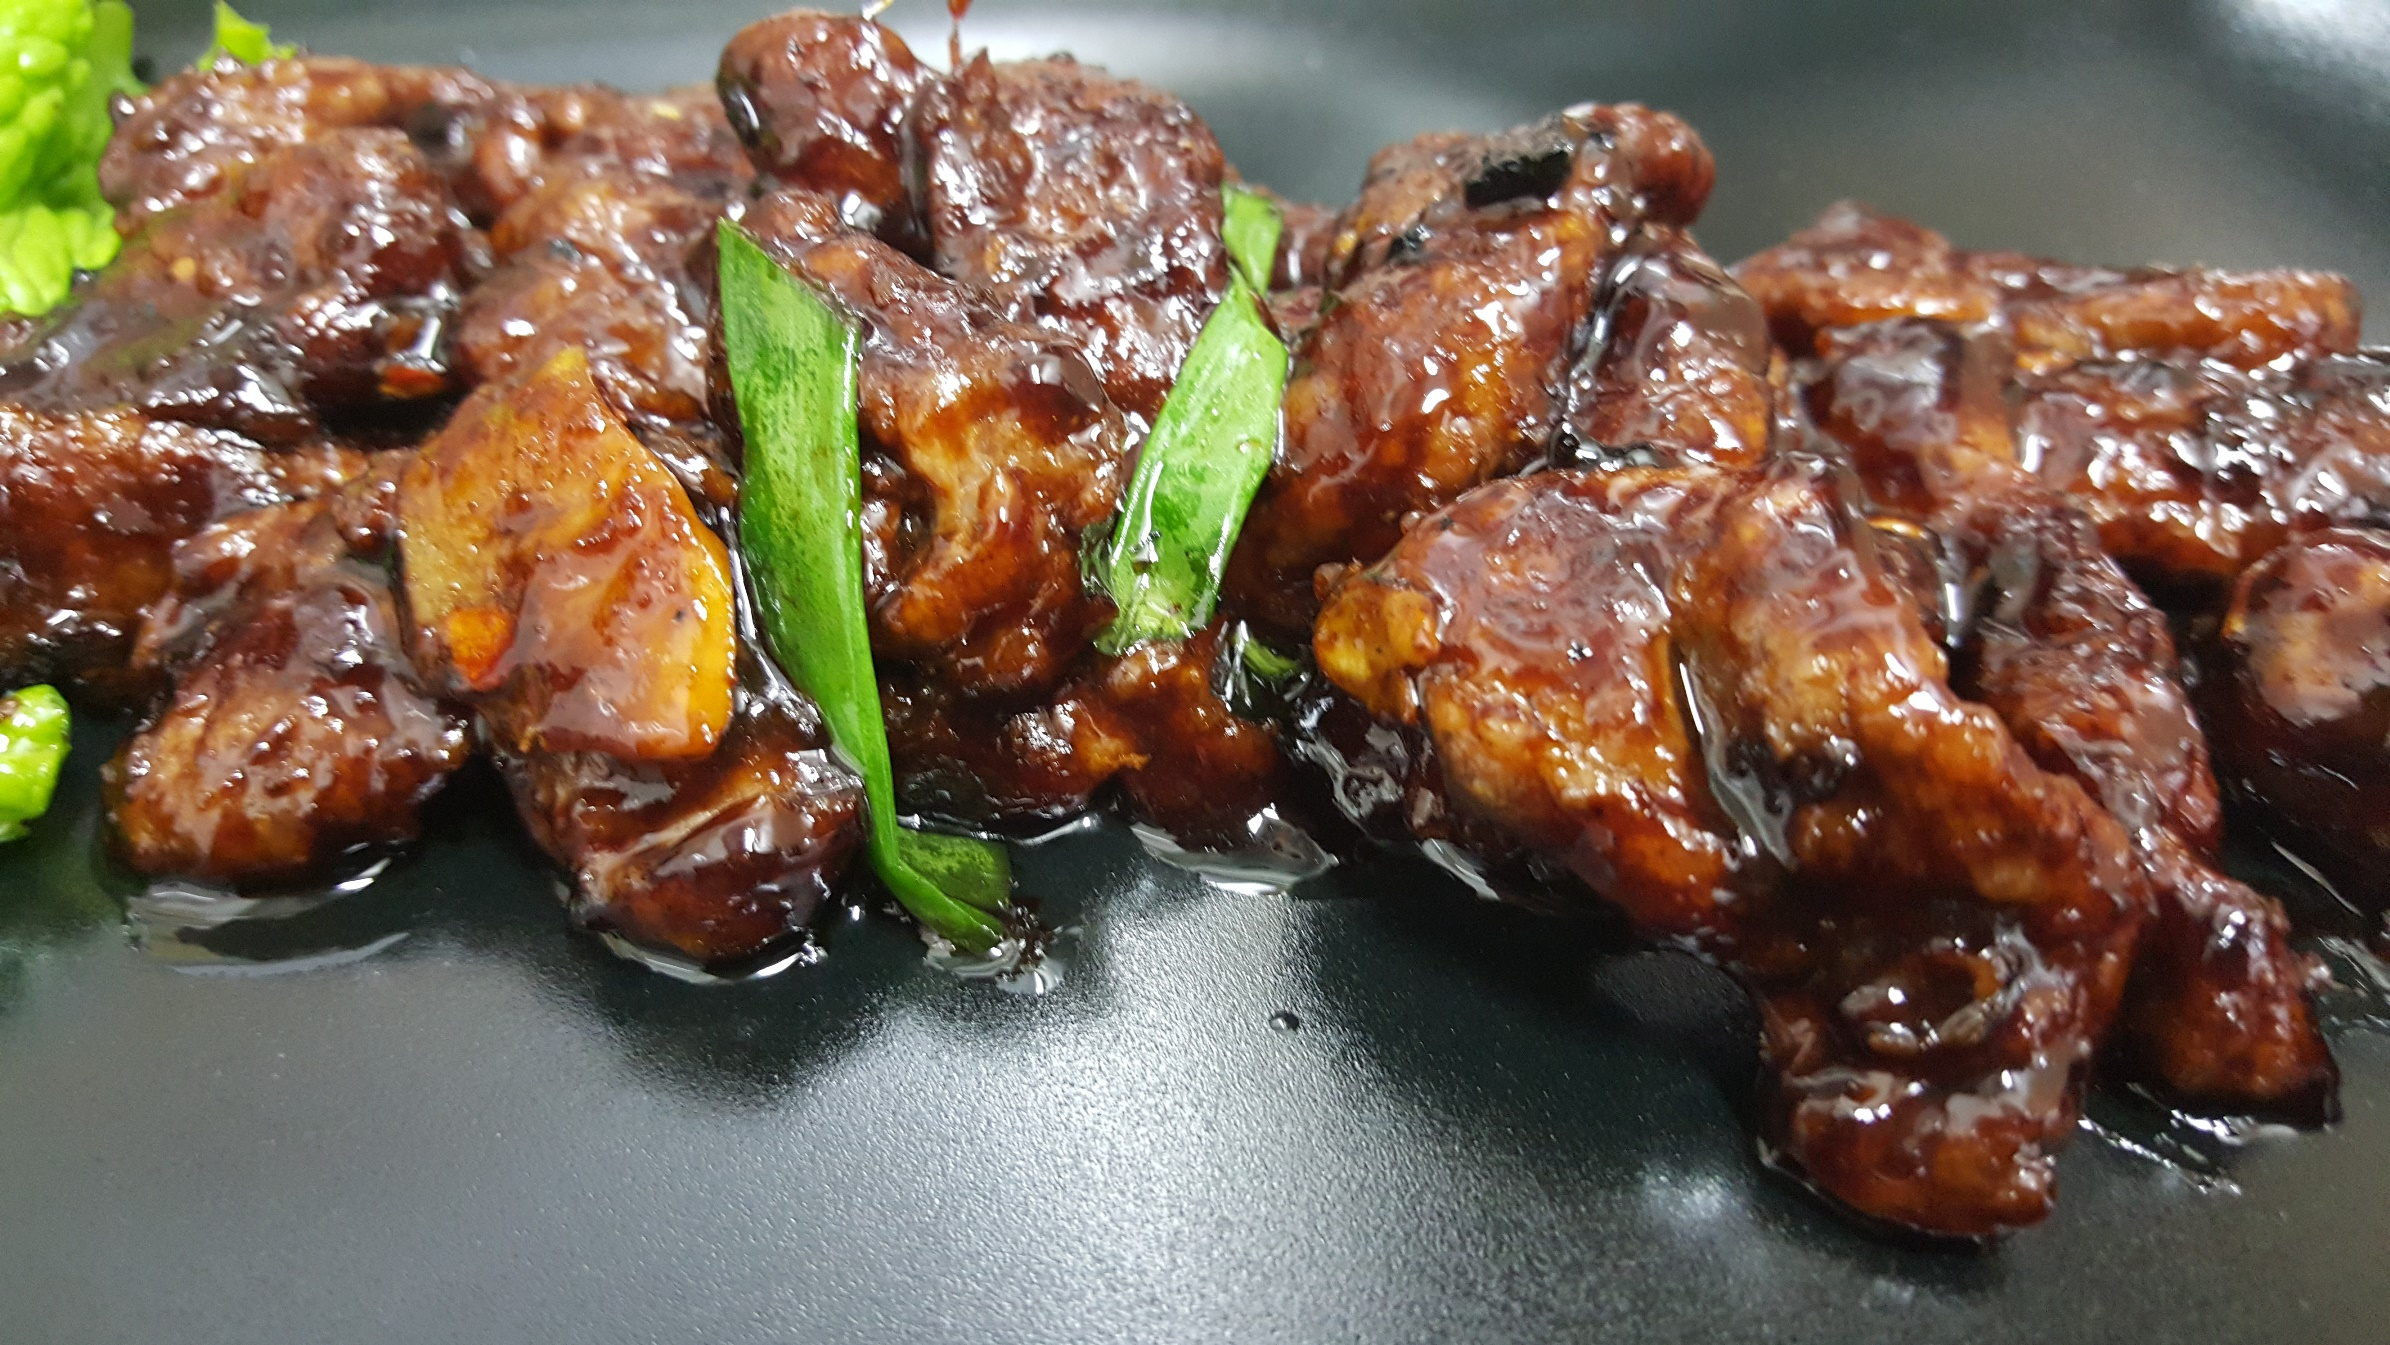 PIQUANT VEAL JULLIENSE - seasoned with fresh ginger, soya sauce, garlic, chinese pepper and chilli